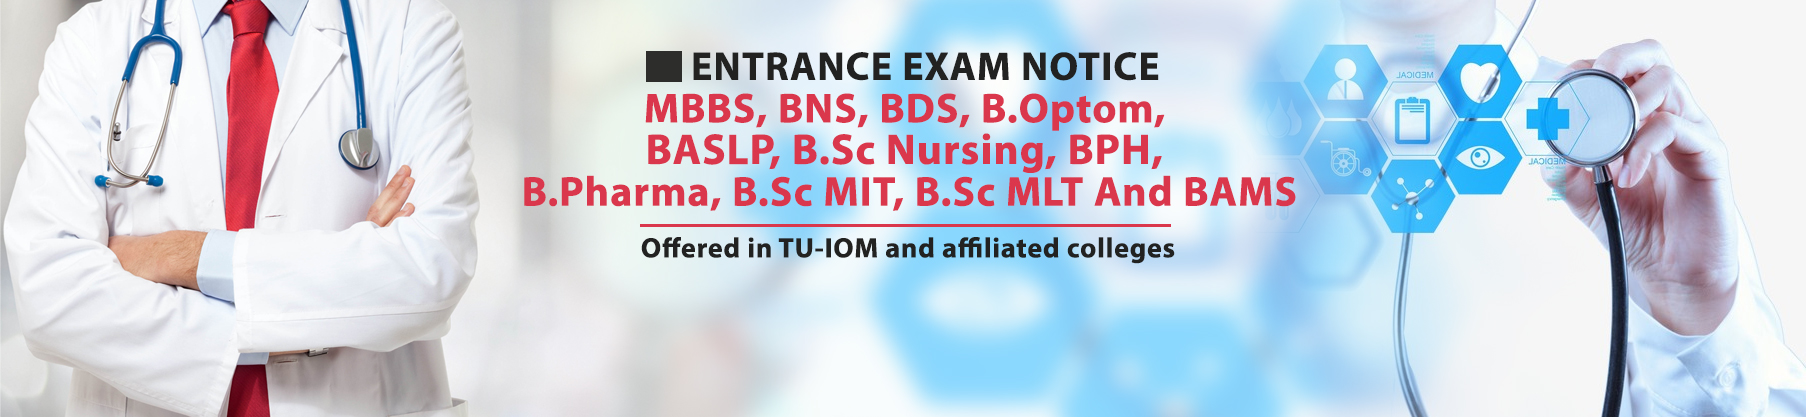 TU IOM  Entrance Exam Notice for MBBS and other undergraduate programs